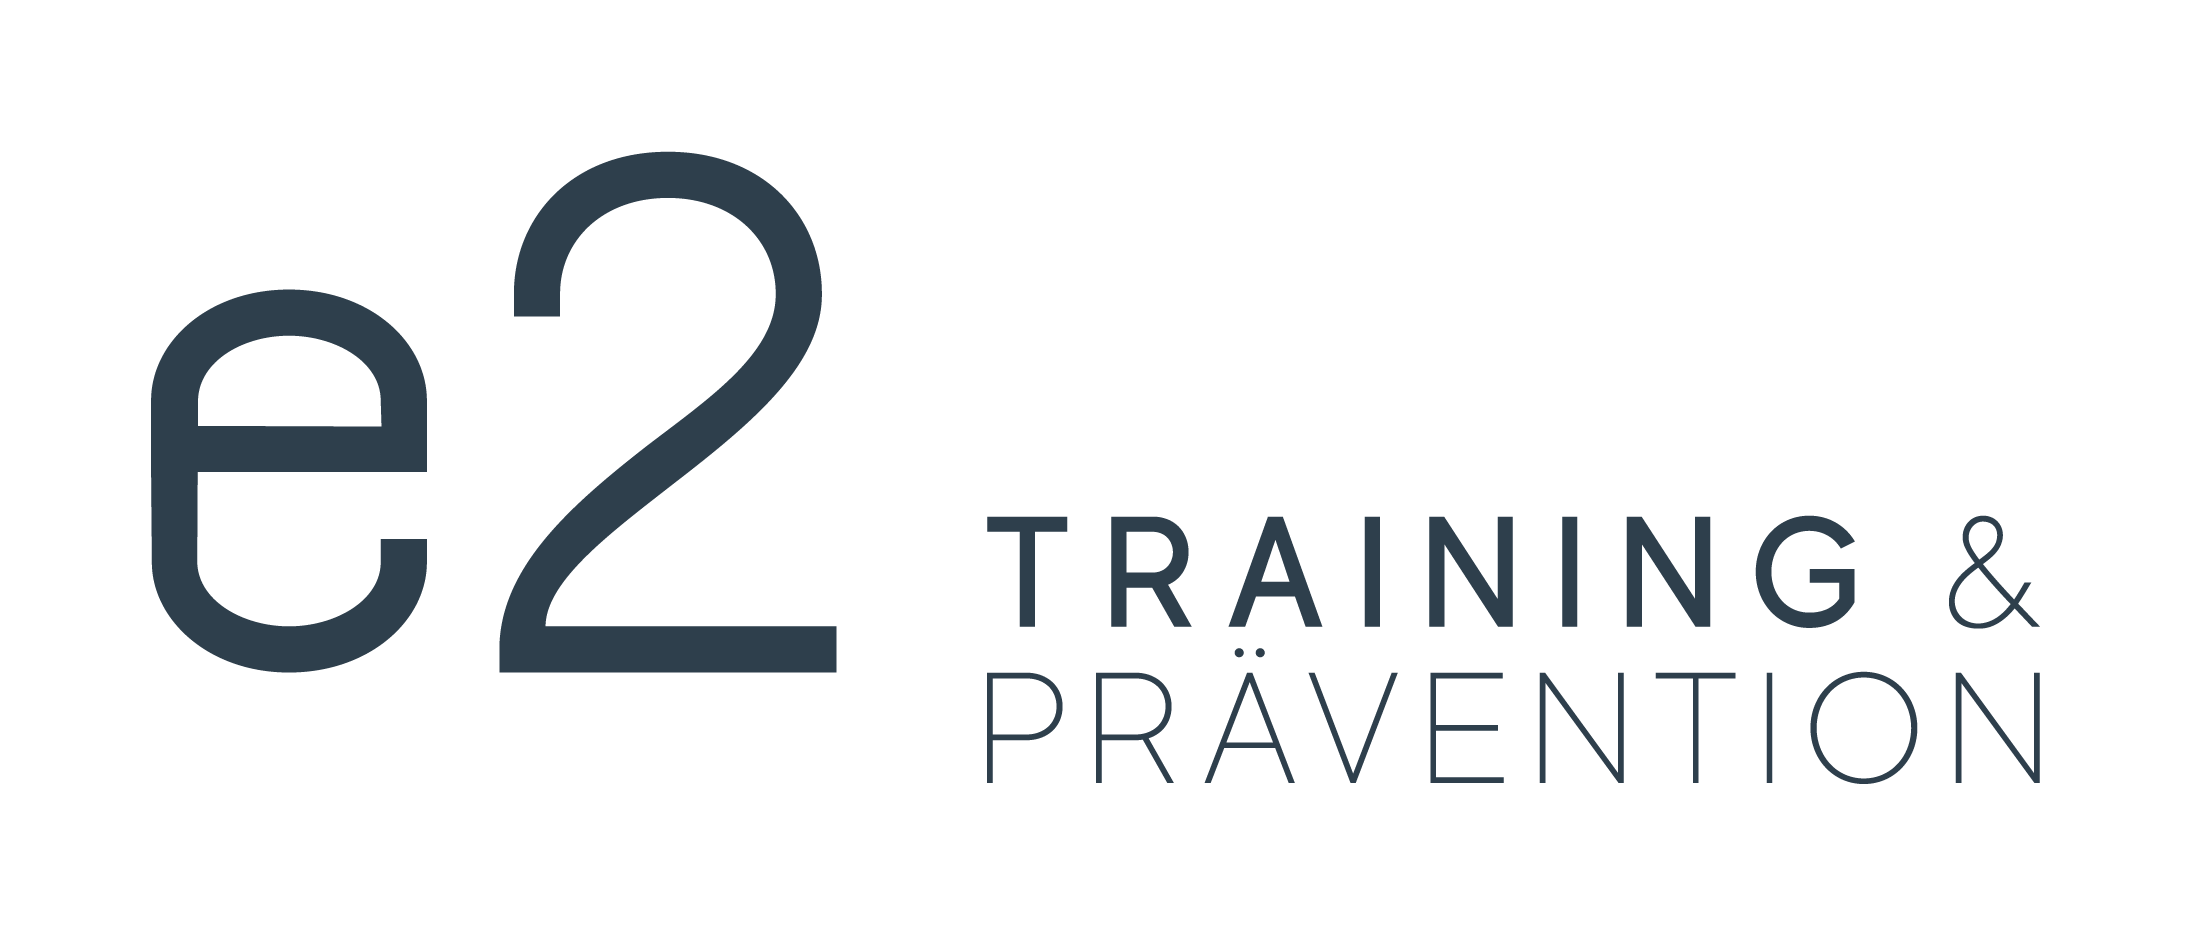 e2 Training & Prävention